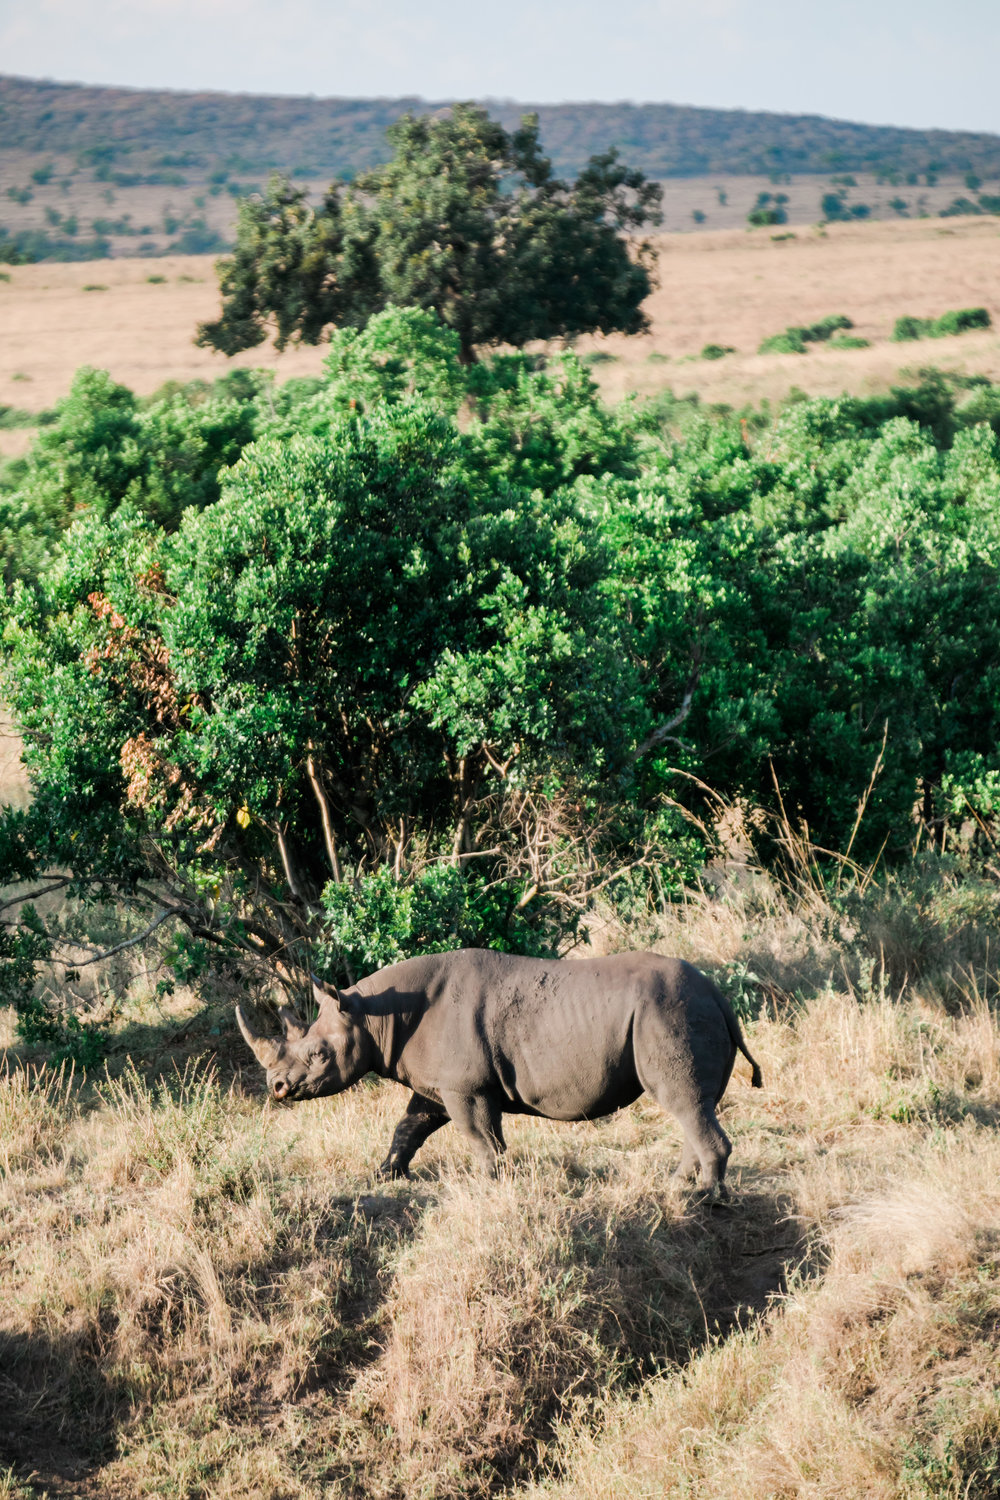 Rhino in Maasai Mara, Kenya Ph. Valorie Darling